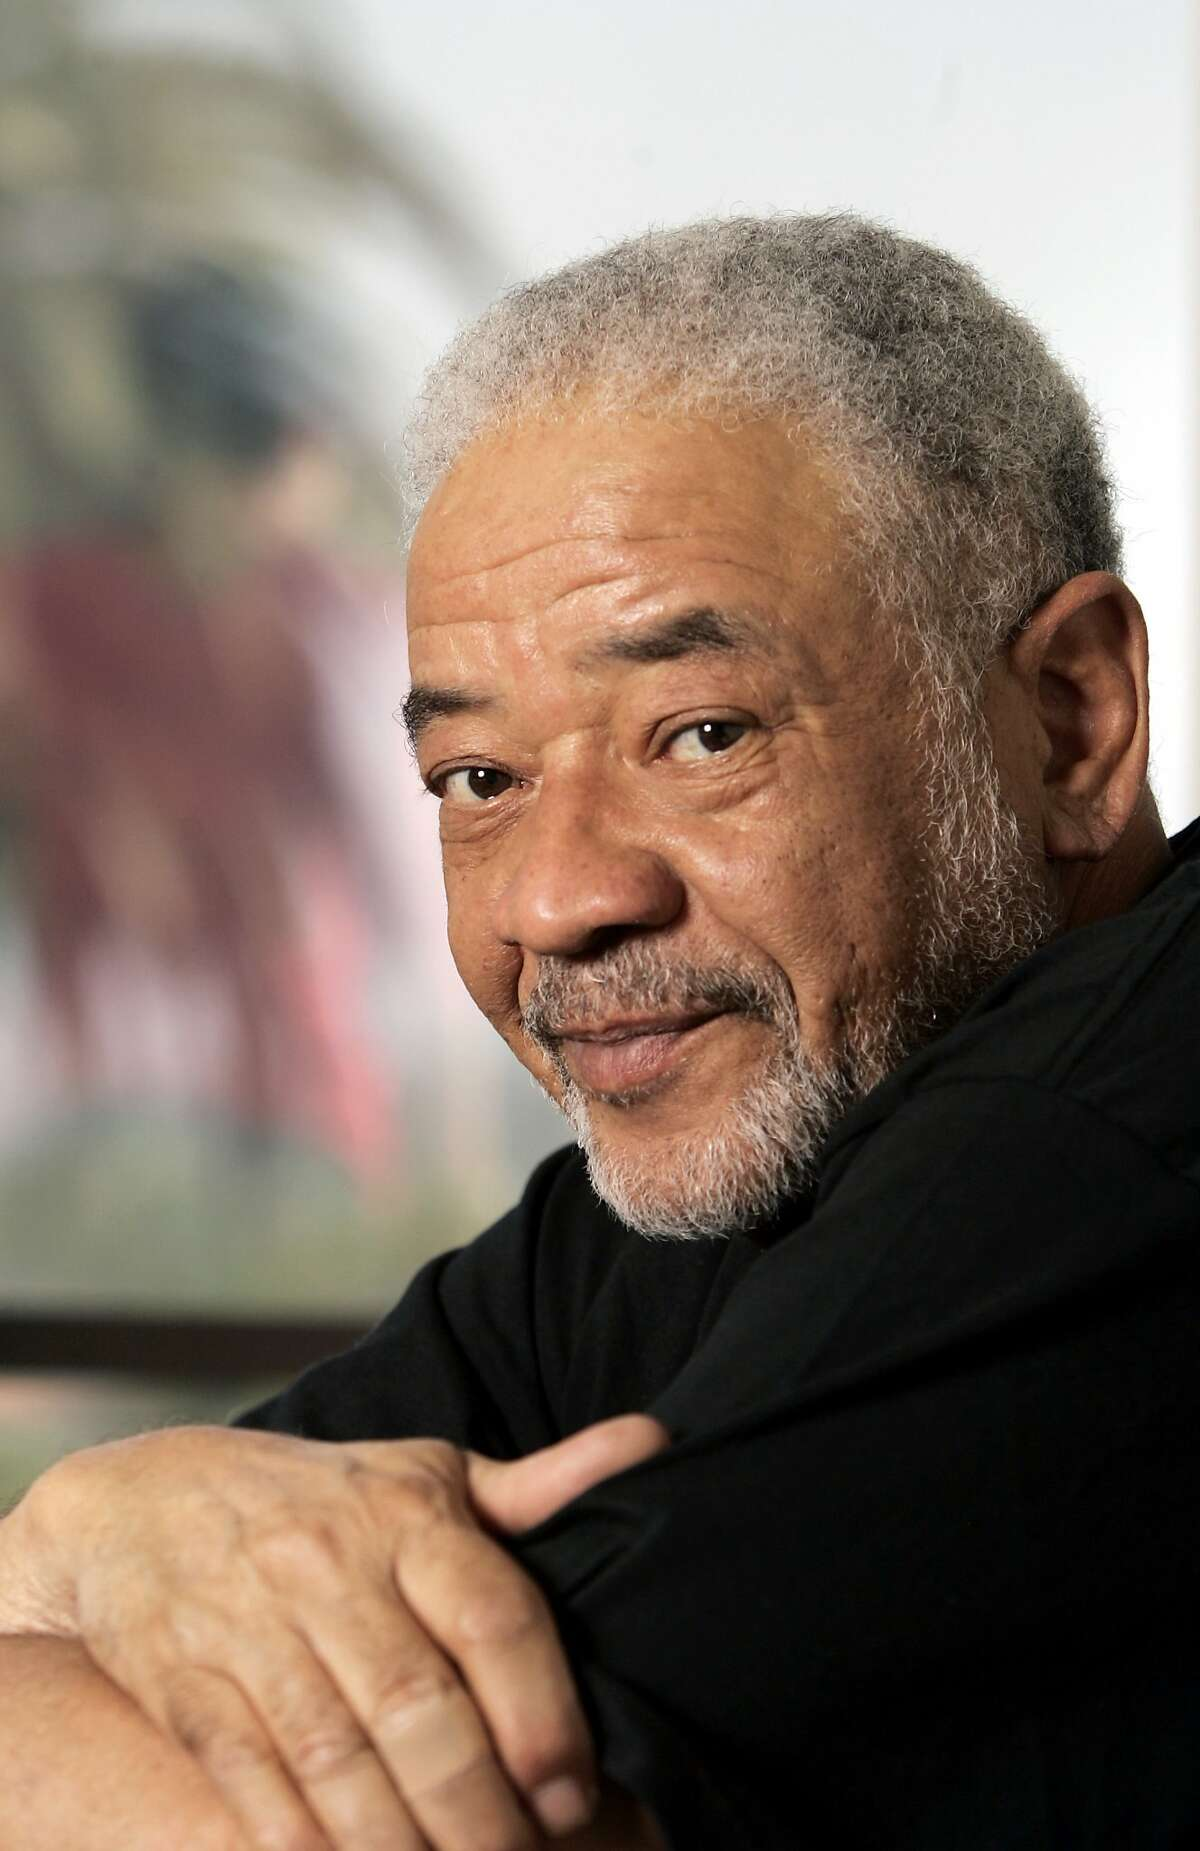 Bill Withers poses in his office in Beverly Hills, Calif., Wednesday, June 21, 2006. The 67-year-old singer-songwriter will be honored by the American Society of Composers, Authors and Publishers Monday for his musical contributions. (AP Photo/Reed Saxon)